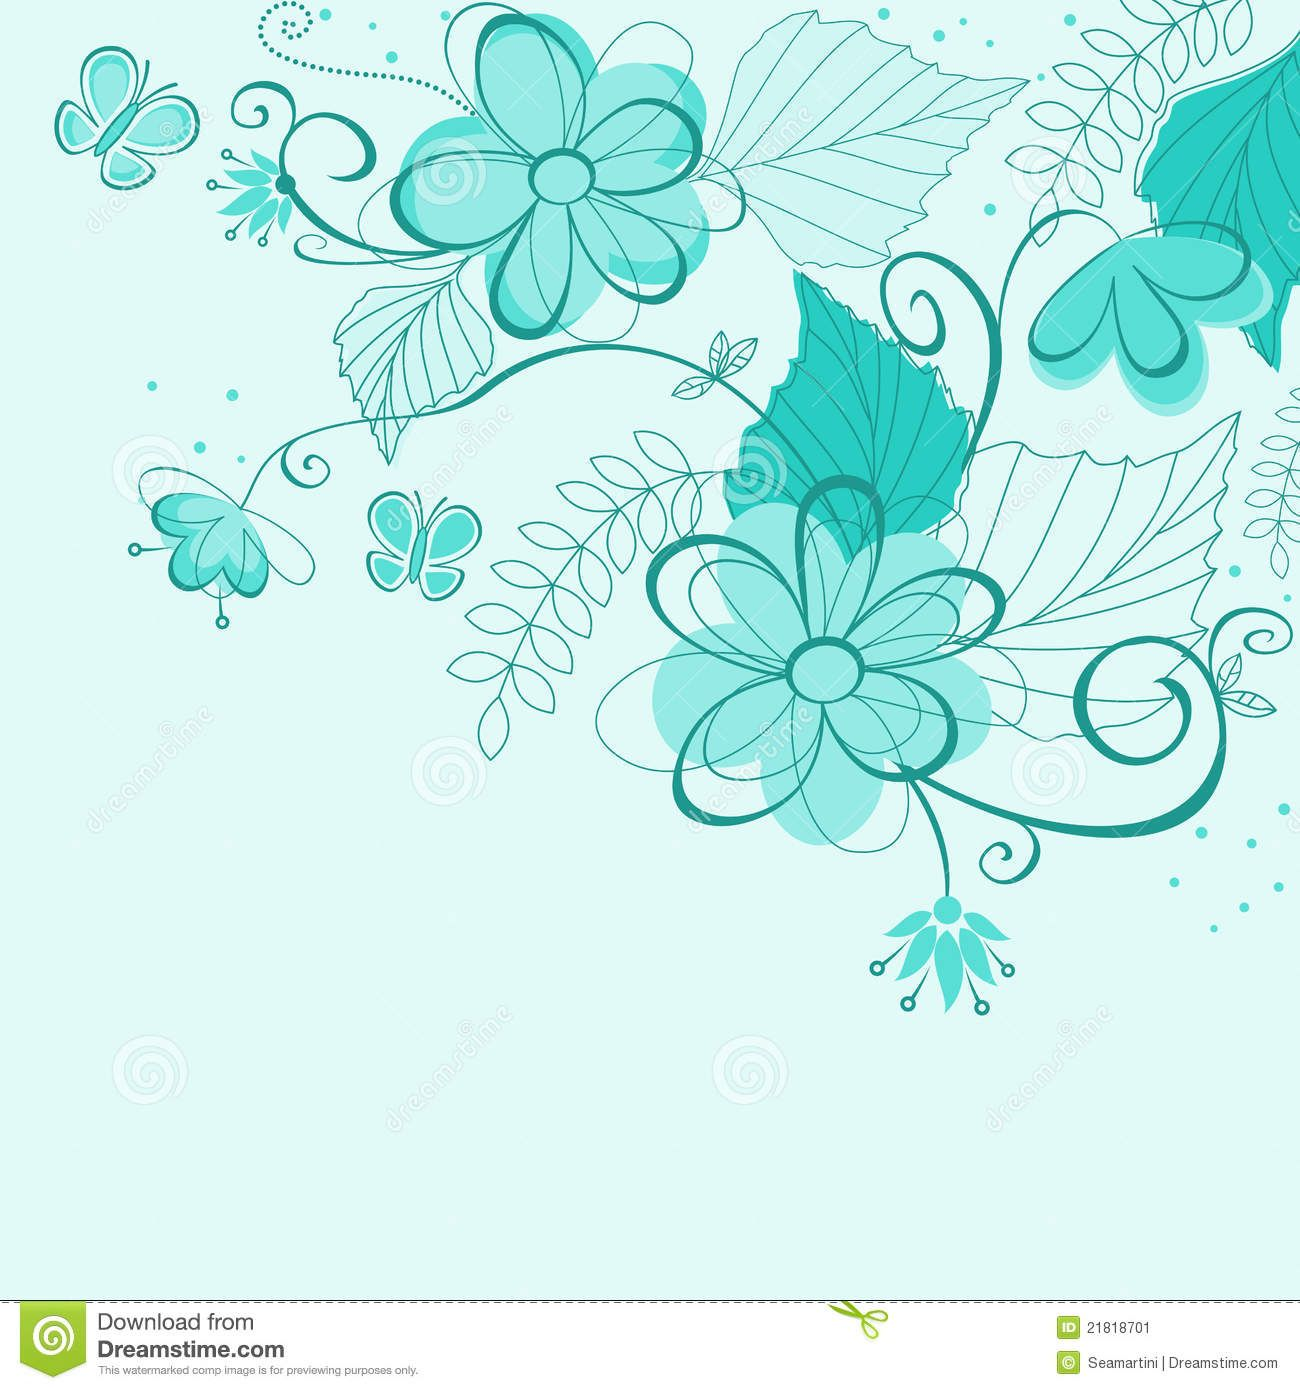 Blue Flower Background Tumblr Google Search Blue Flowers